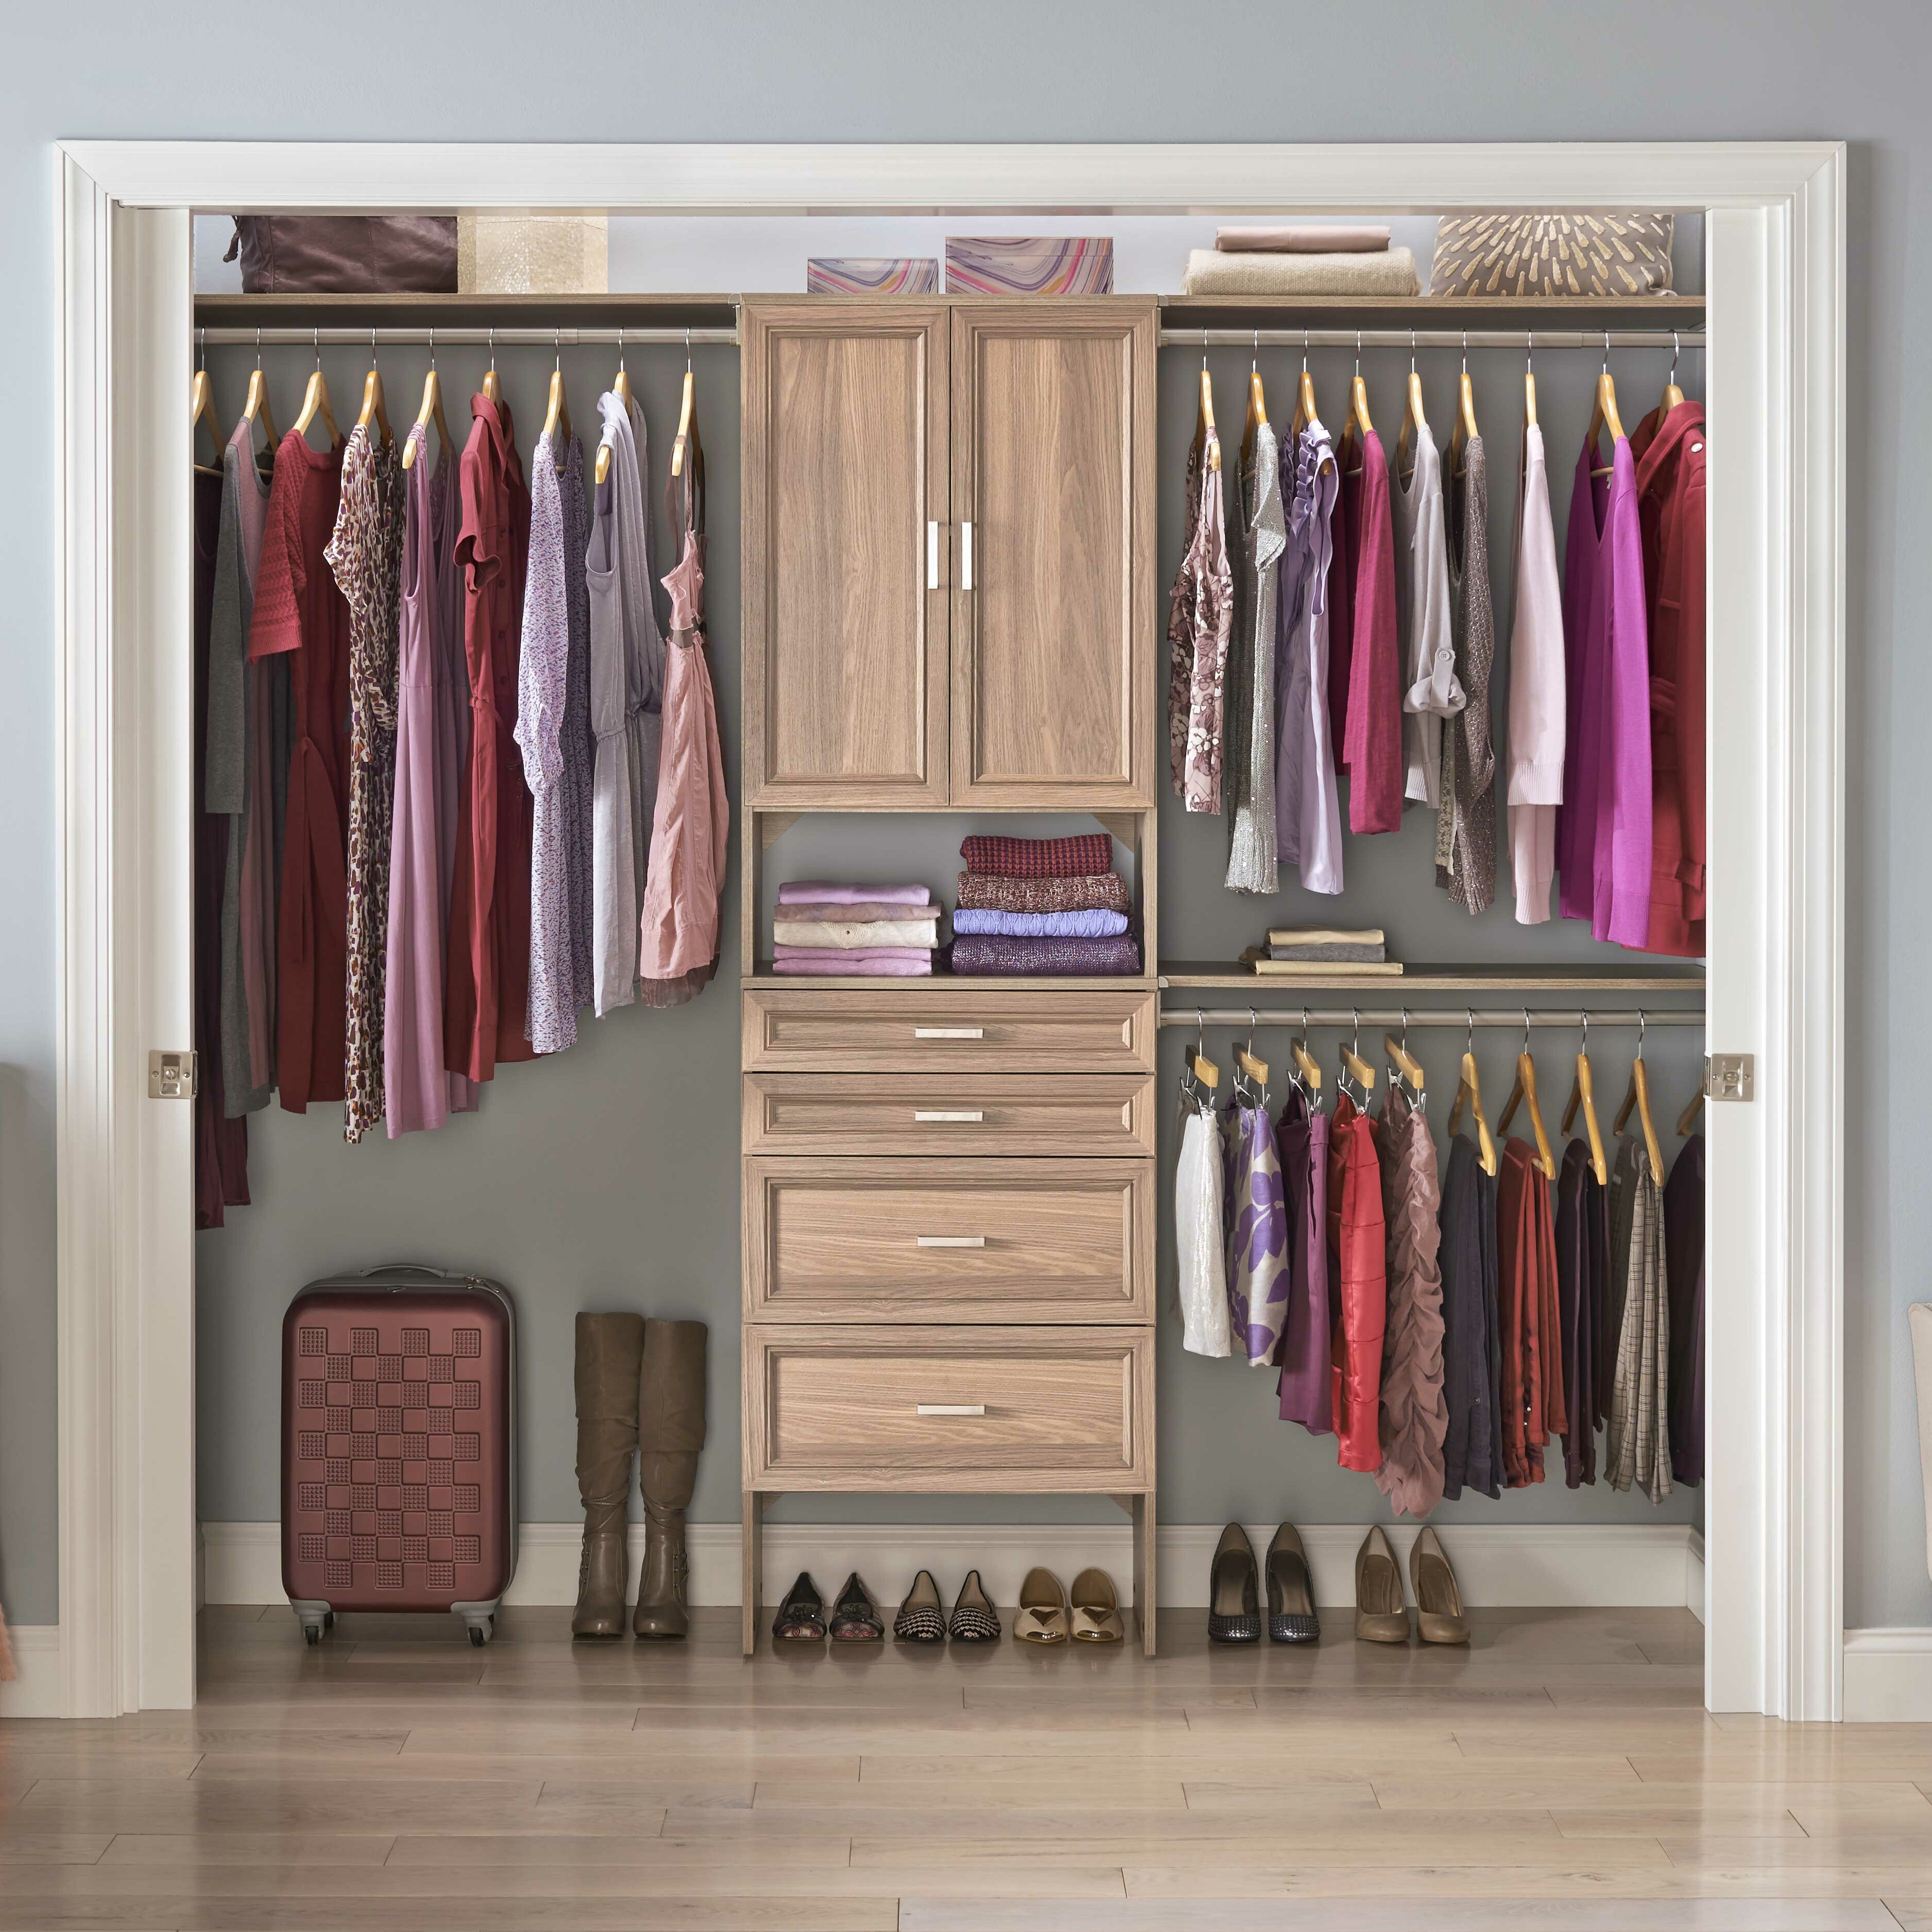 of how shelf coat clothes your hanging organizer design to space pantry closet storage home system wall the kids makeover size affordable systems full have dreams and organization